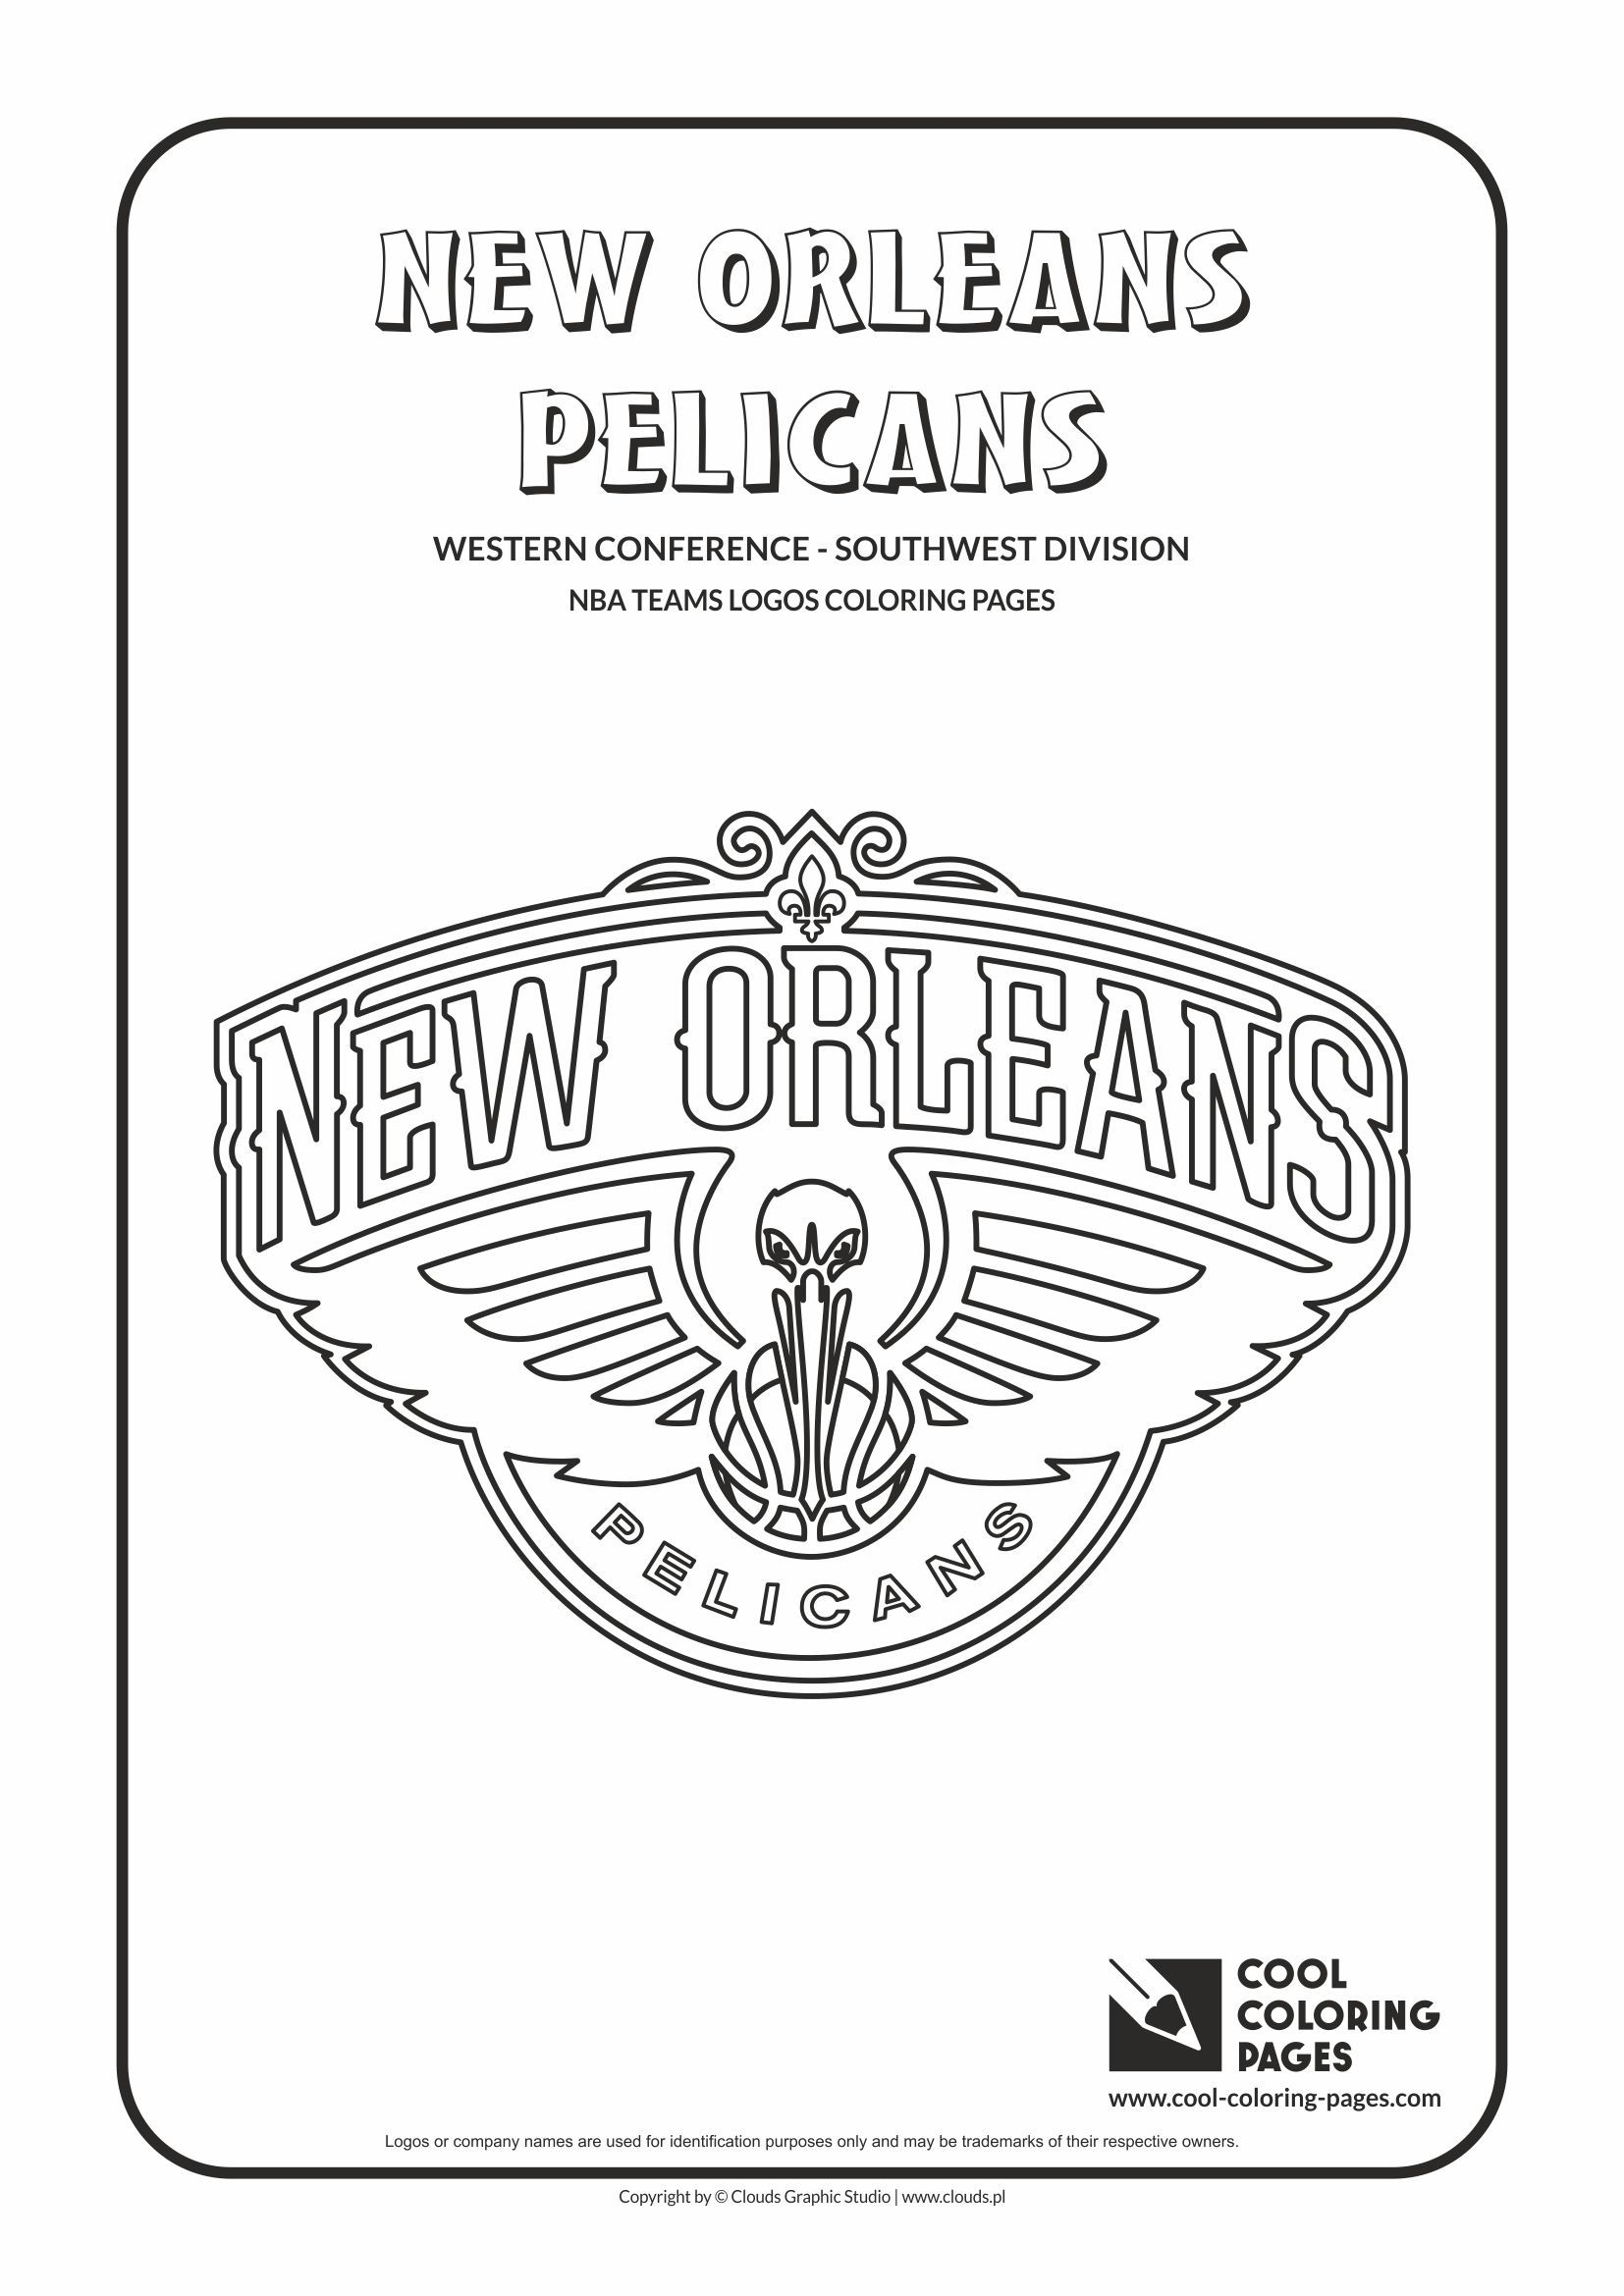 Coloring pages nba - Cool Coloring Pages Nba Basketball Clubs Logos Western Conference